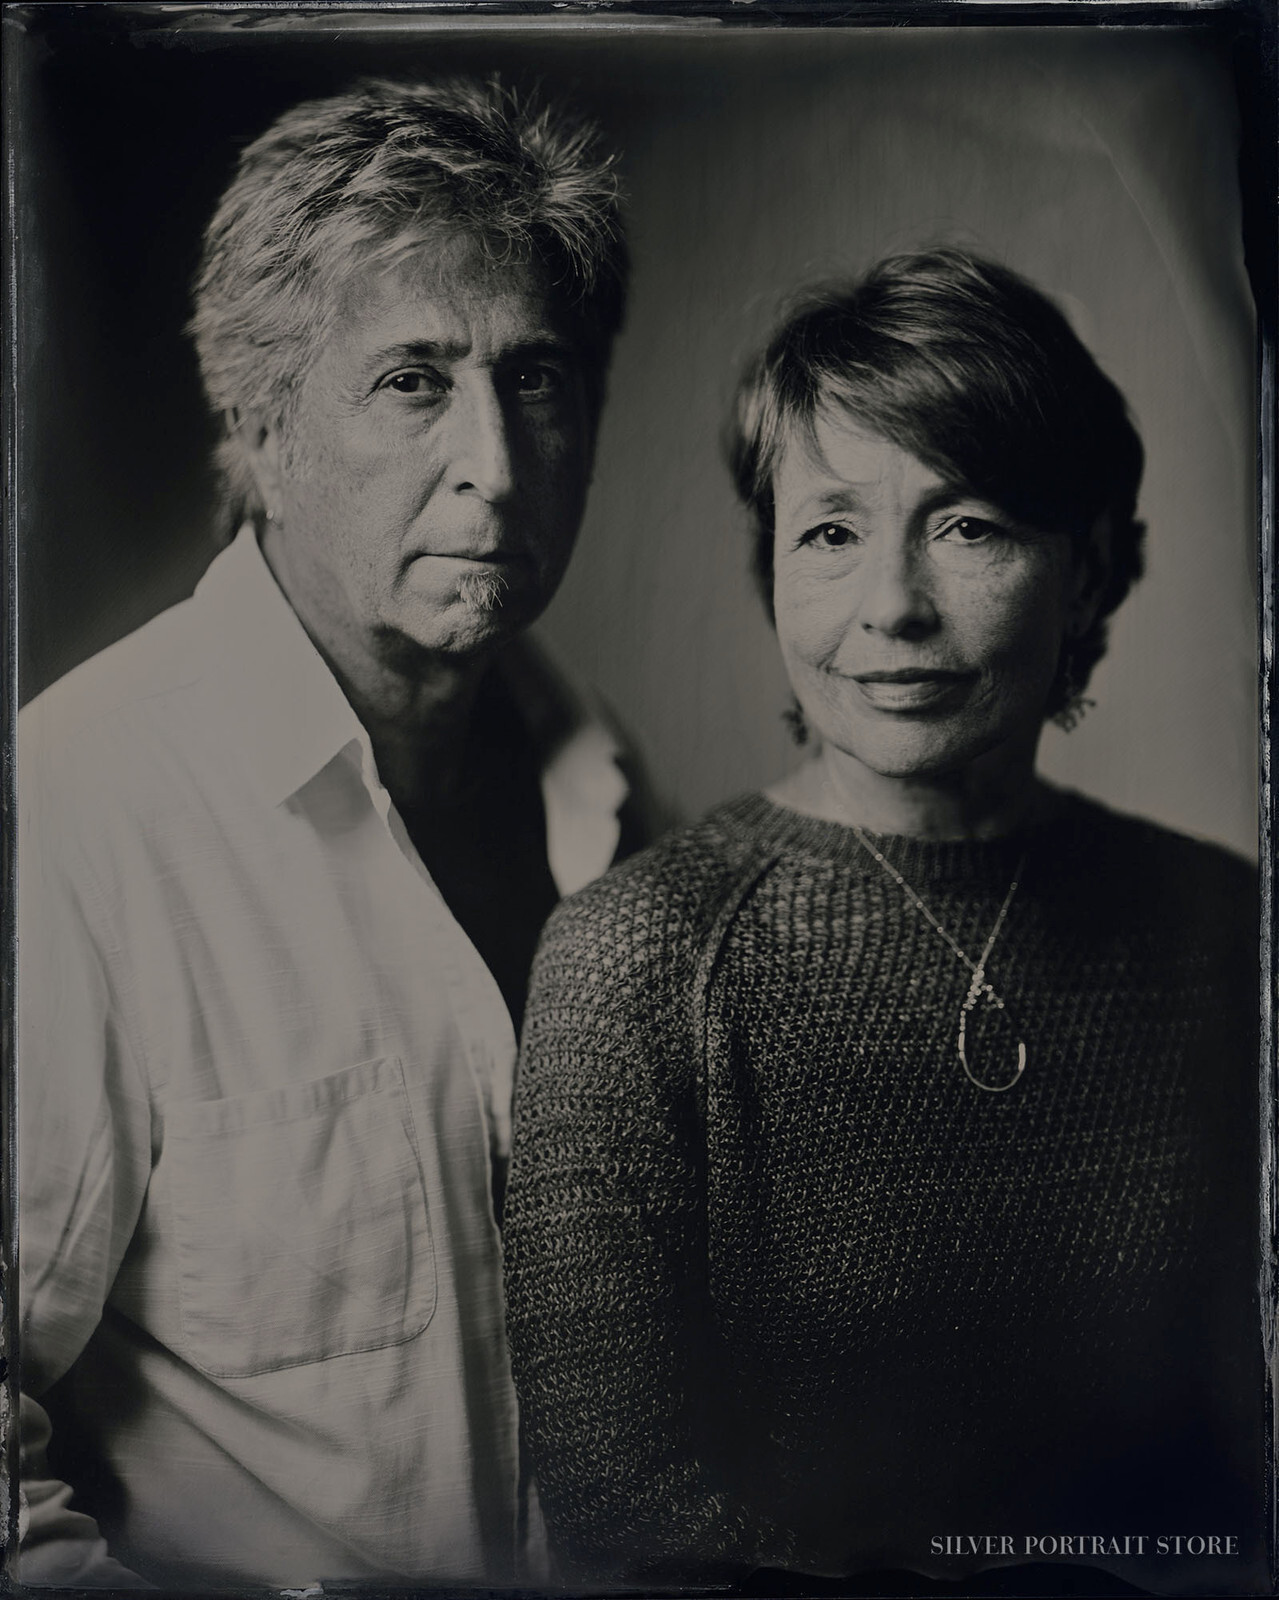 Janet & Patrick-Silver Portrait Store-Wet plate collodion-Tintype 20 x 25cm.